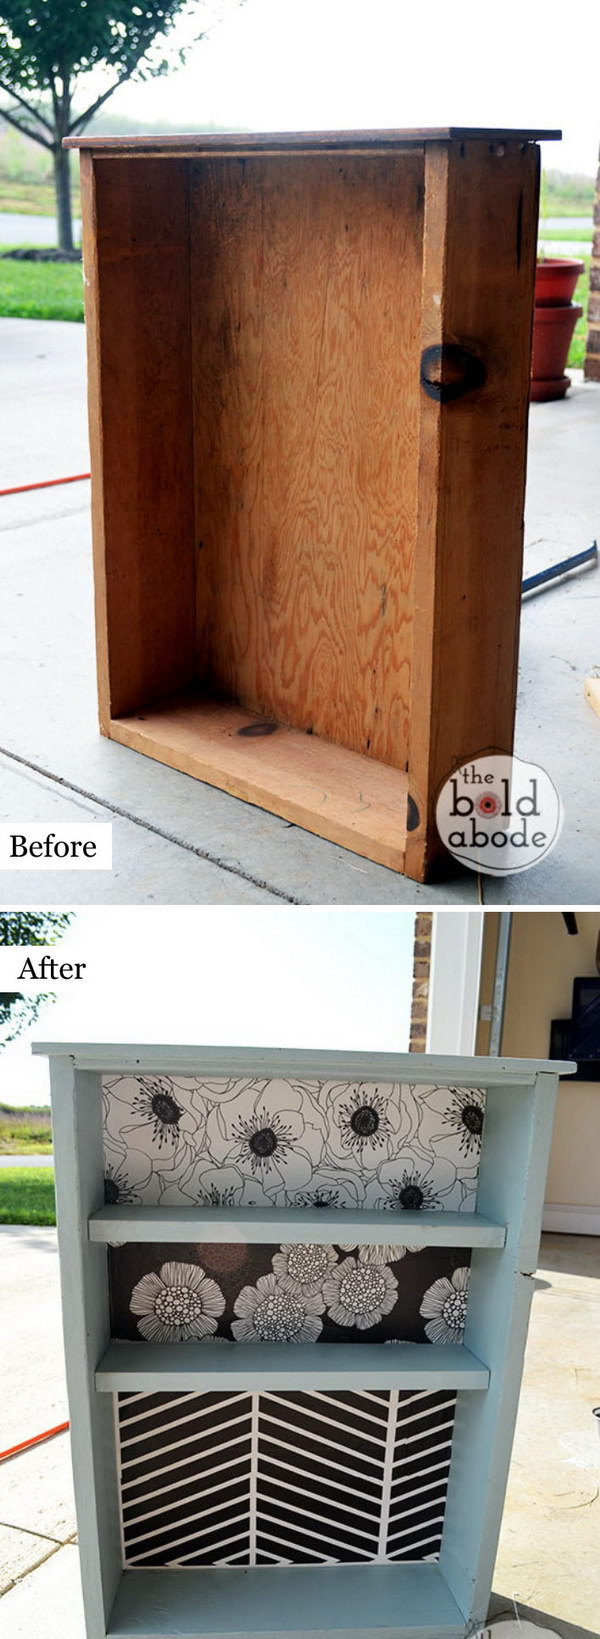 From Old Drawer To Bathroom Shelf.